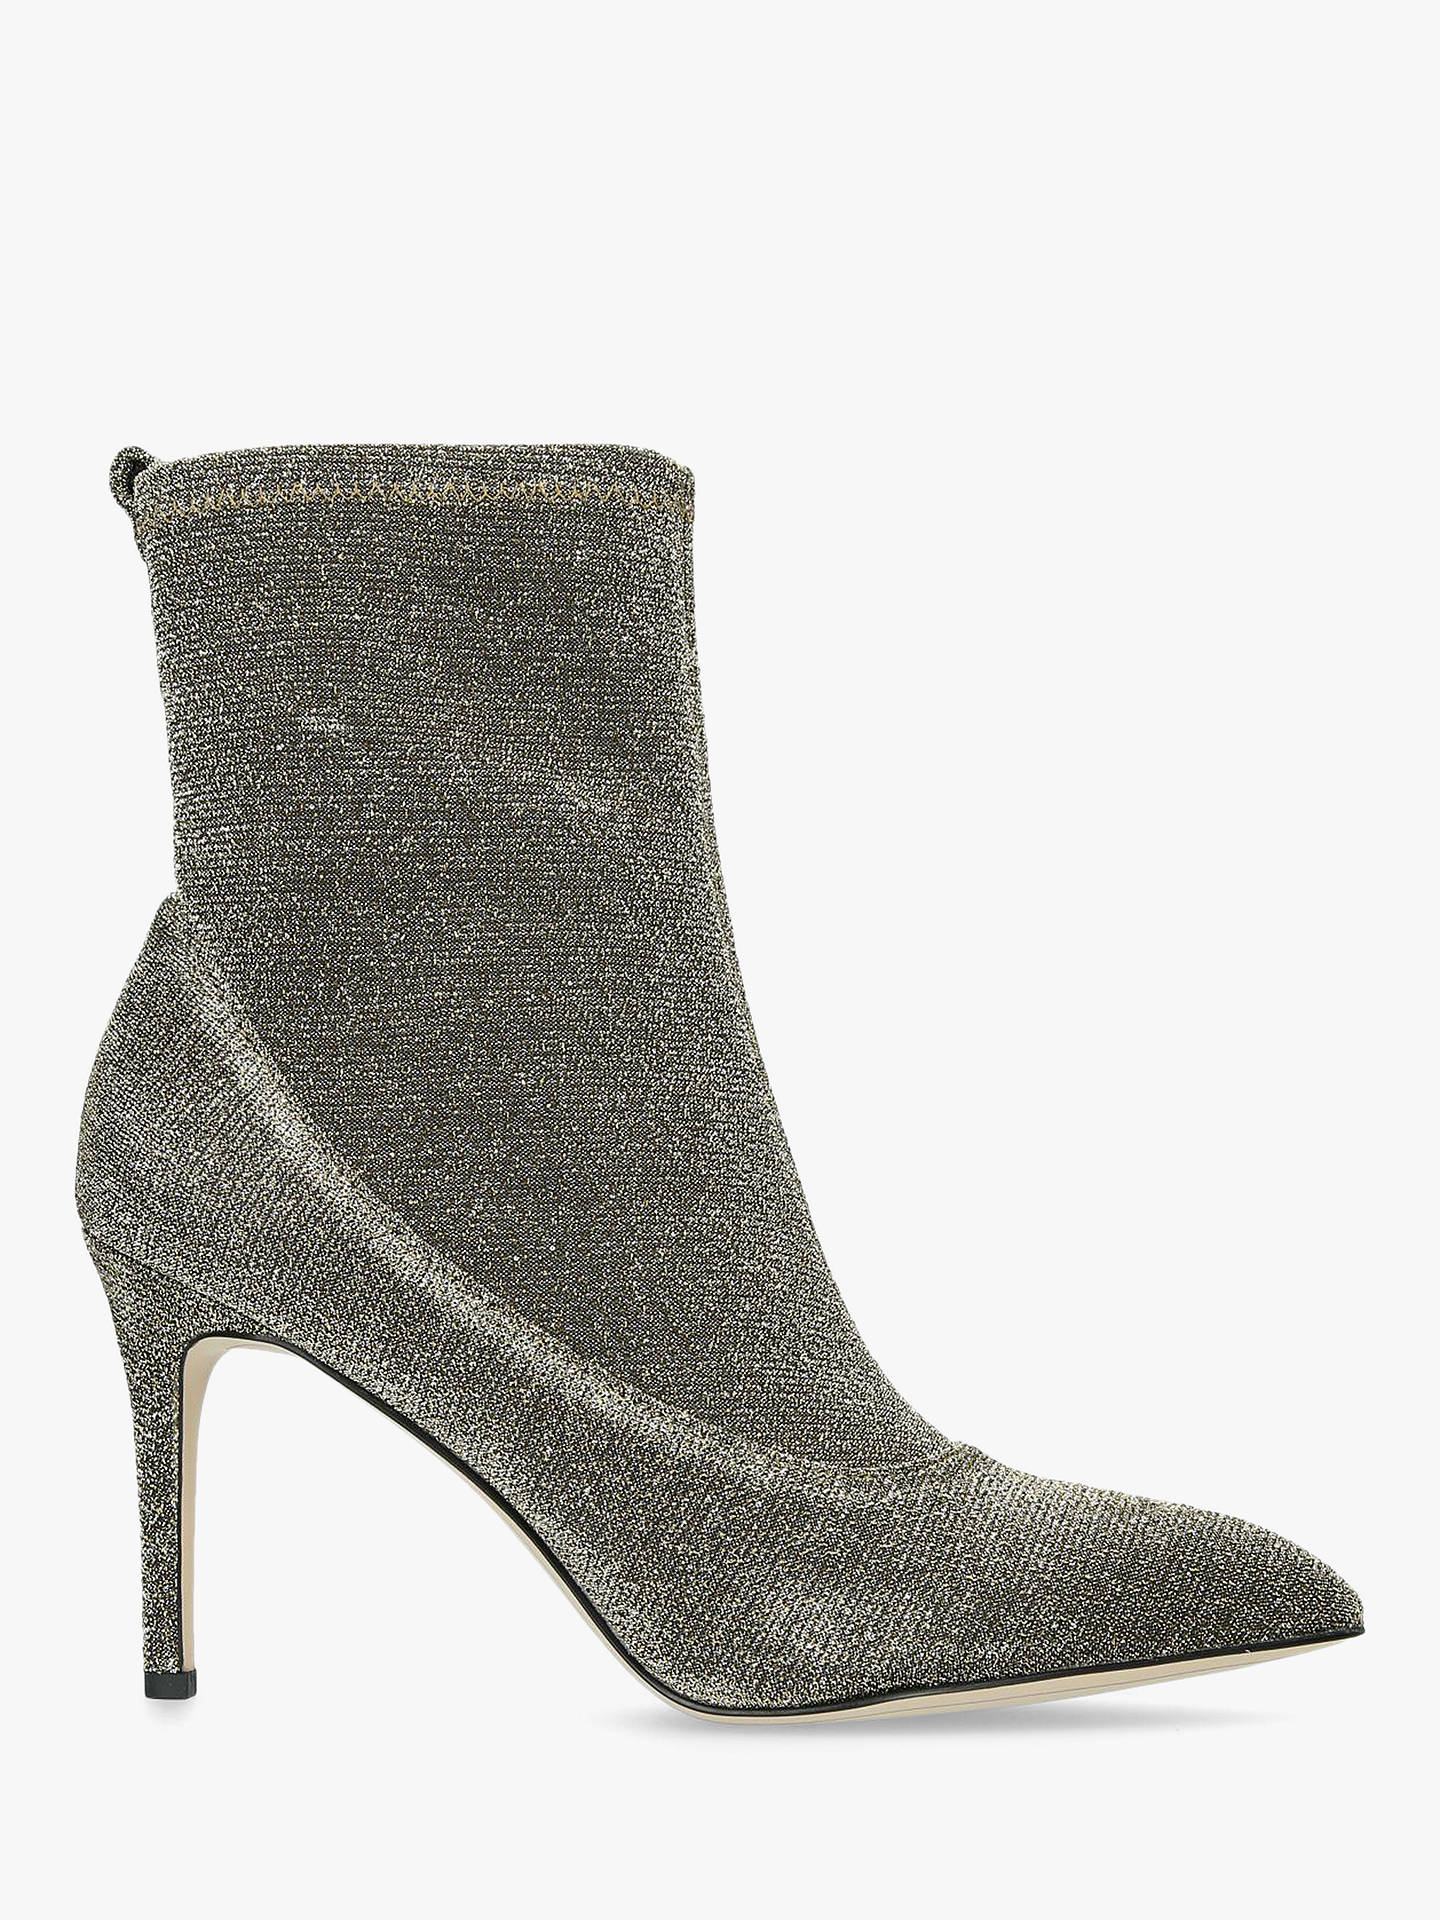 ed507d713 Buy Sam Edelman Olson Stiletto Heel Ankle Sock Boots